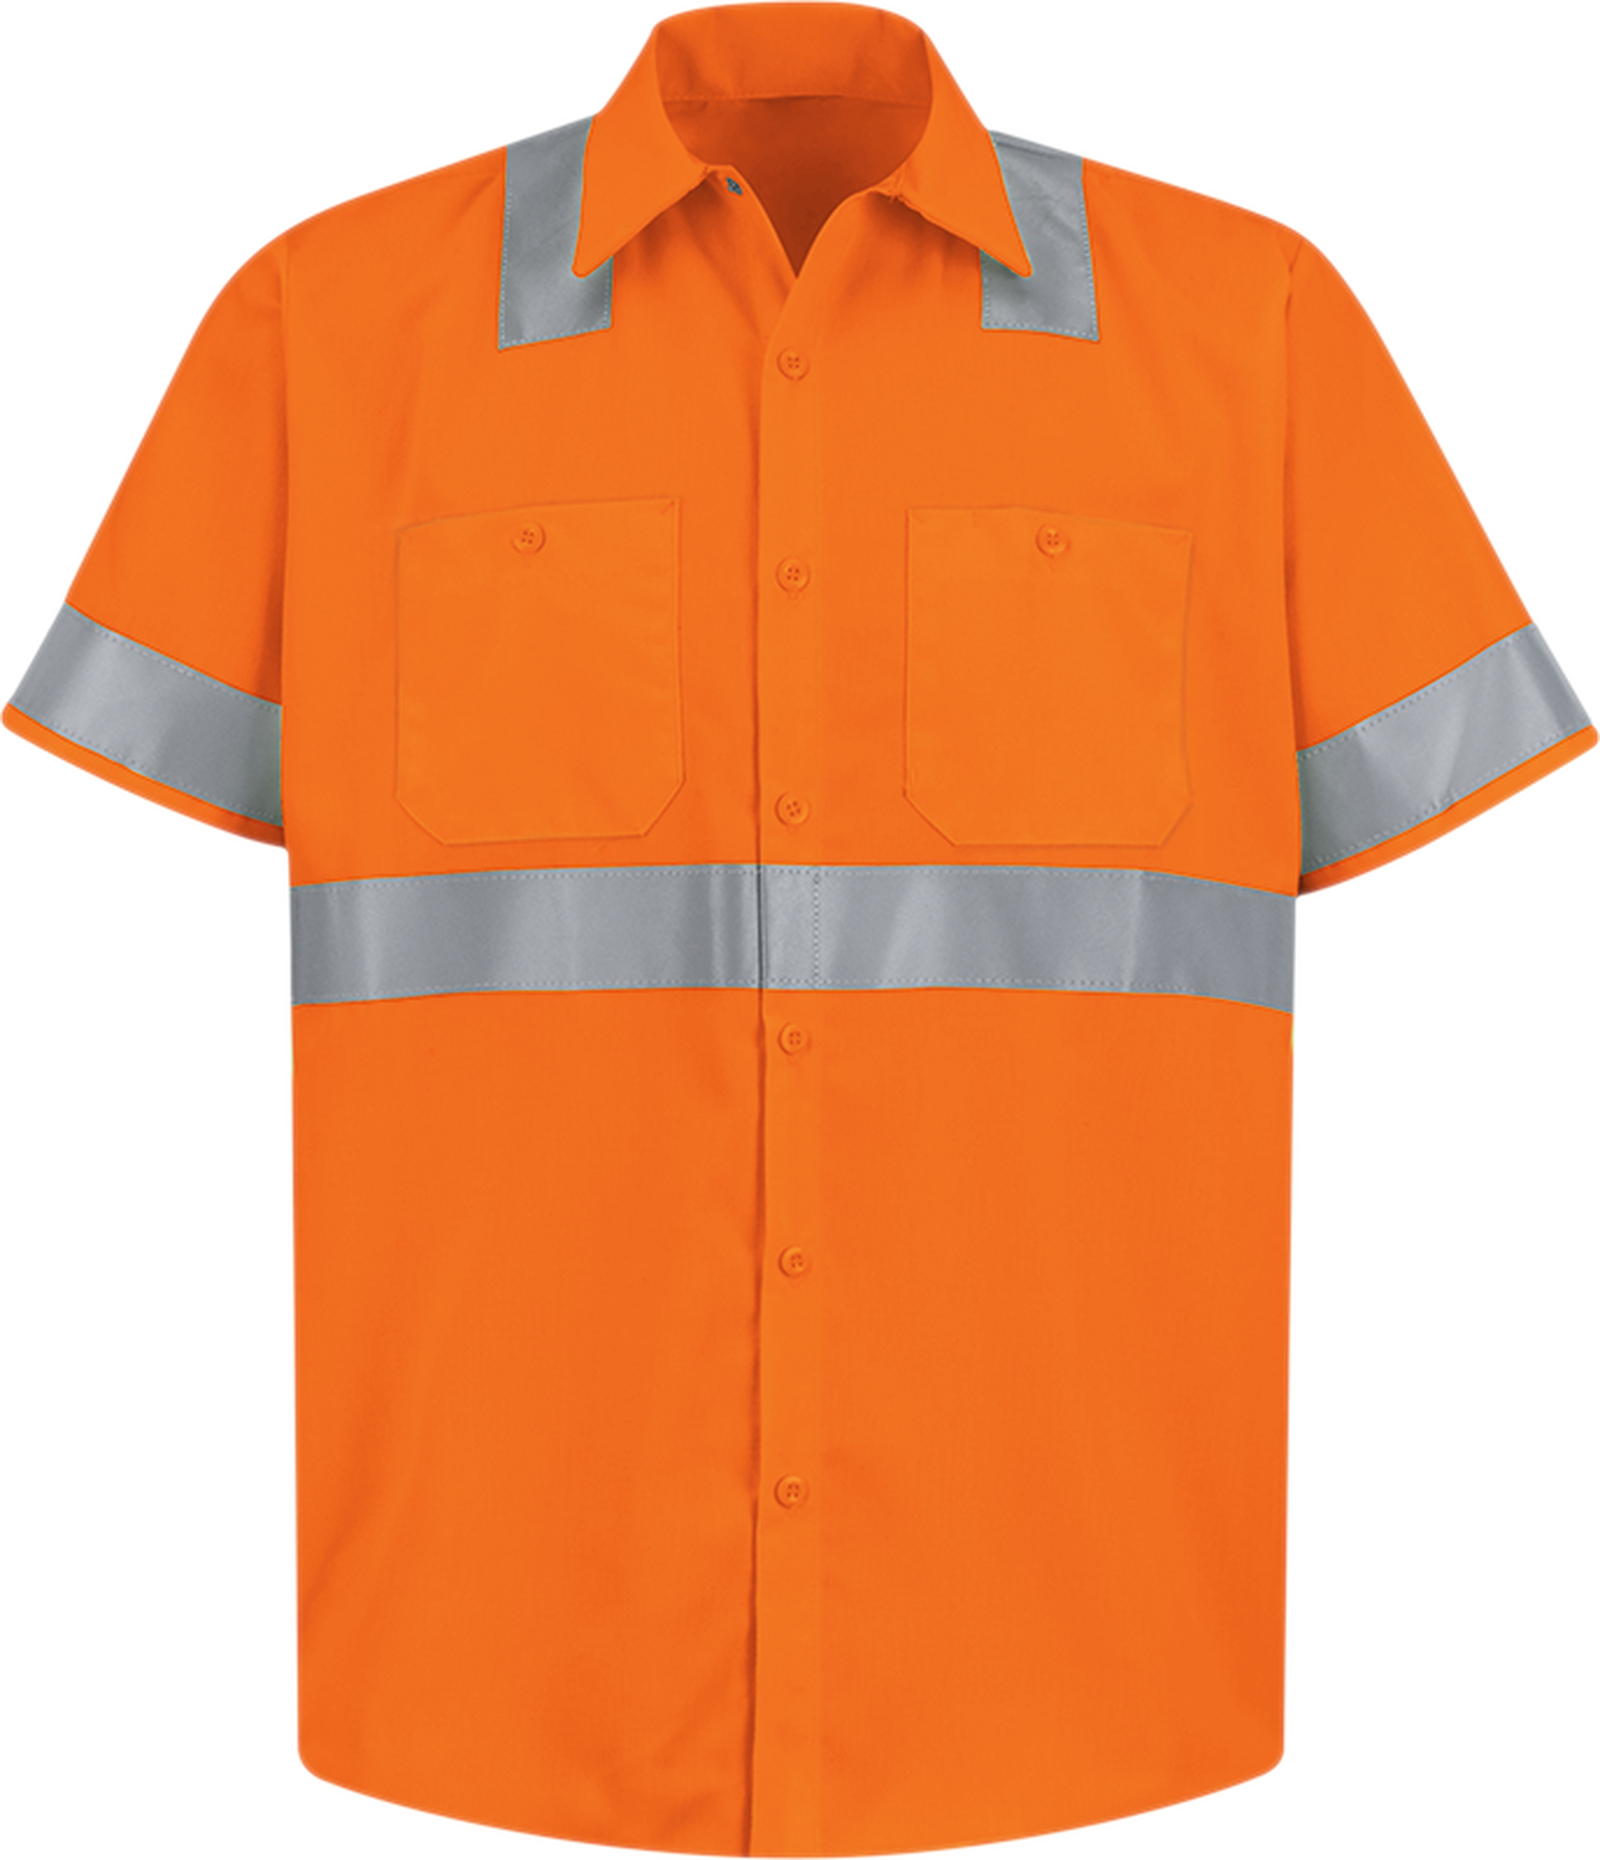 Men's Hi-Visibility Short Sleeve Work Shirt - Type R, Class 2